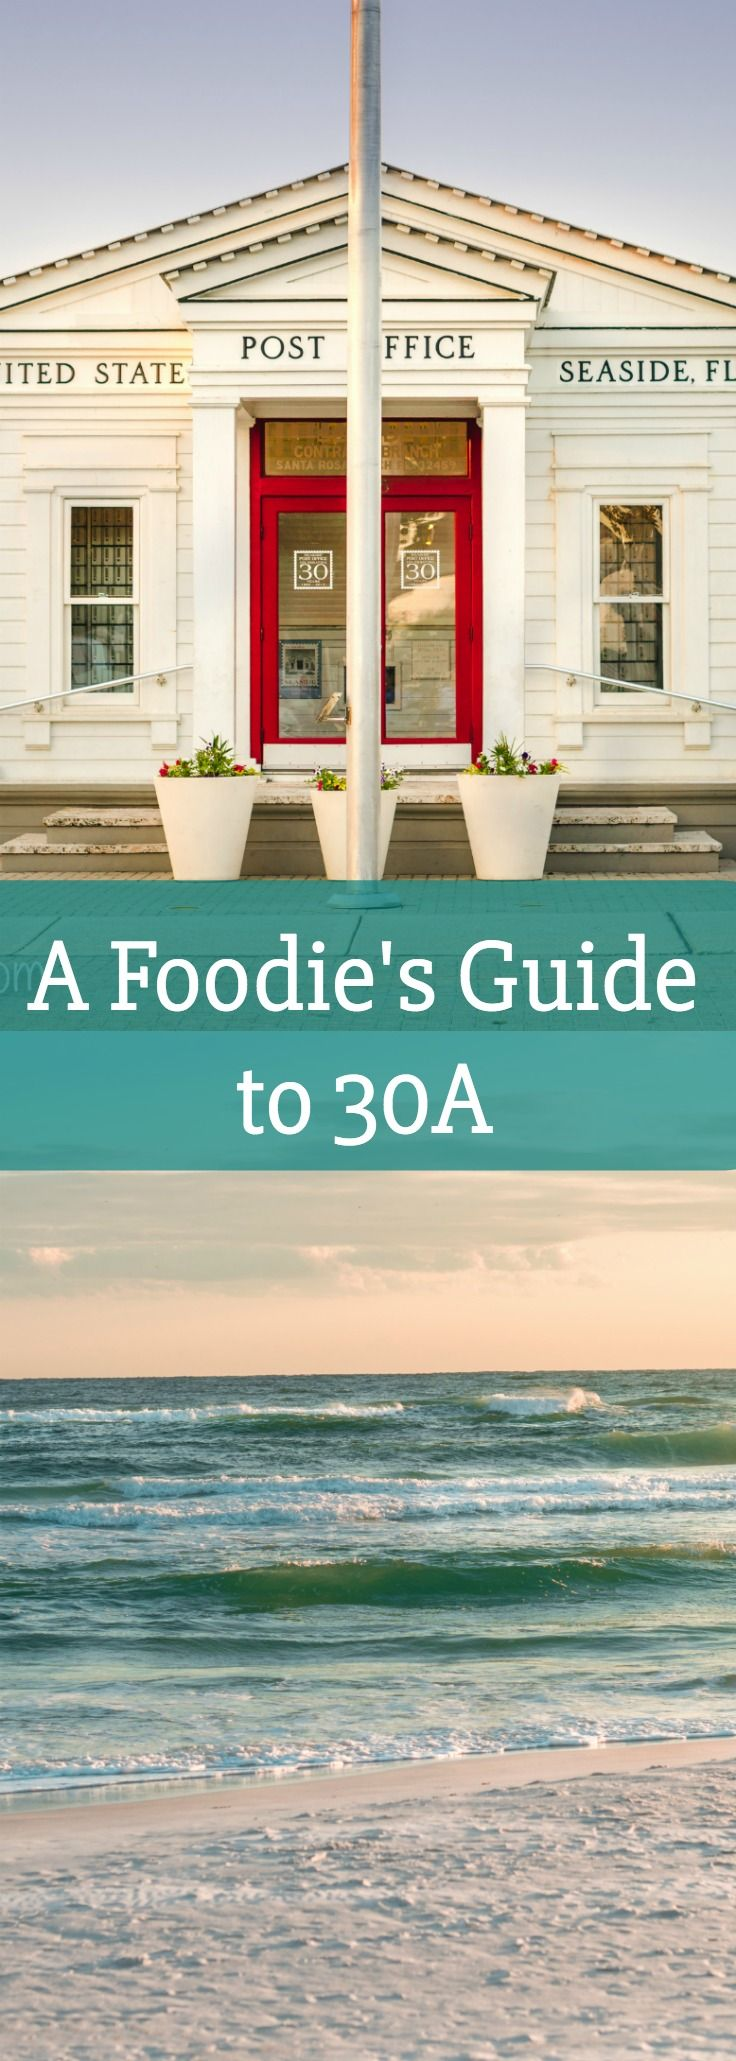 A Foodie's Guide to 30A | travel | traveling | Florida | Florida Panhandle | Destin | Seaside | Beach | Beach trip | ocean |  via @LovePastaBlog